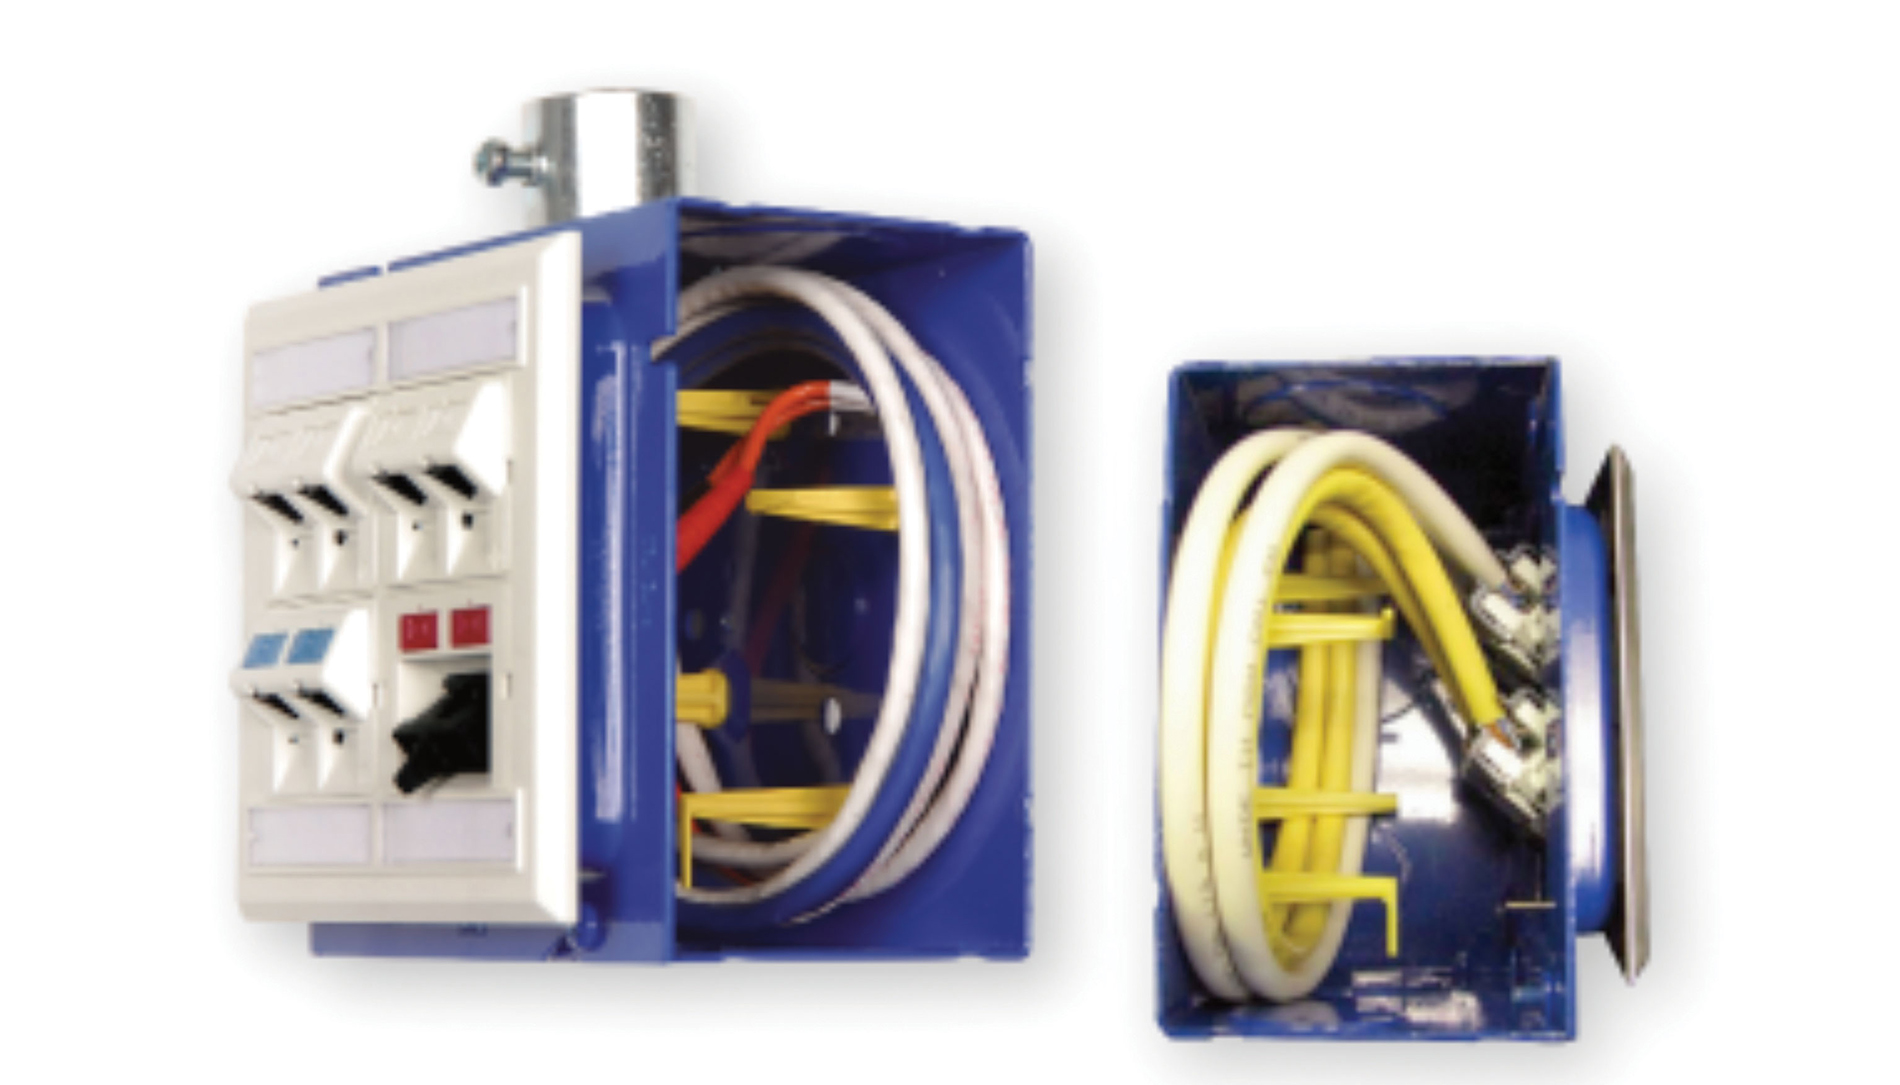 Box Electrical Contractor Magazine Arlington Inwall Wiring Kit Prewired Tv Bridge 1gang Boxes White Randl Industries